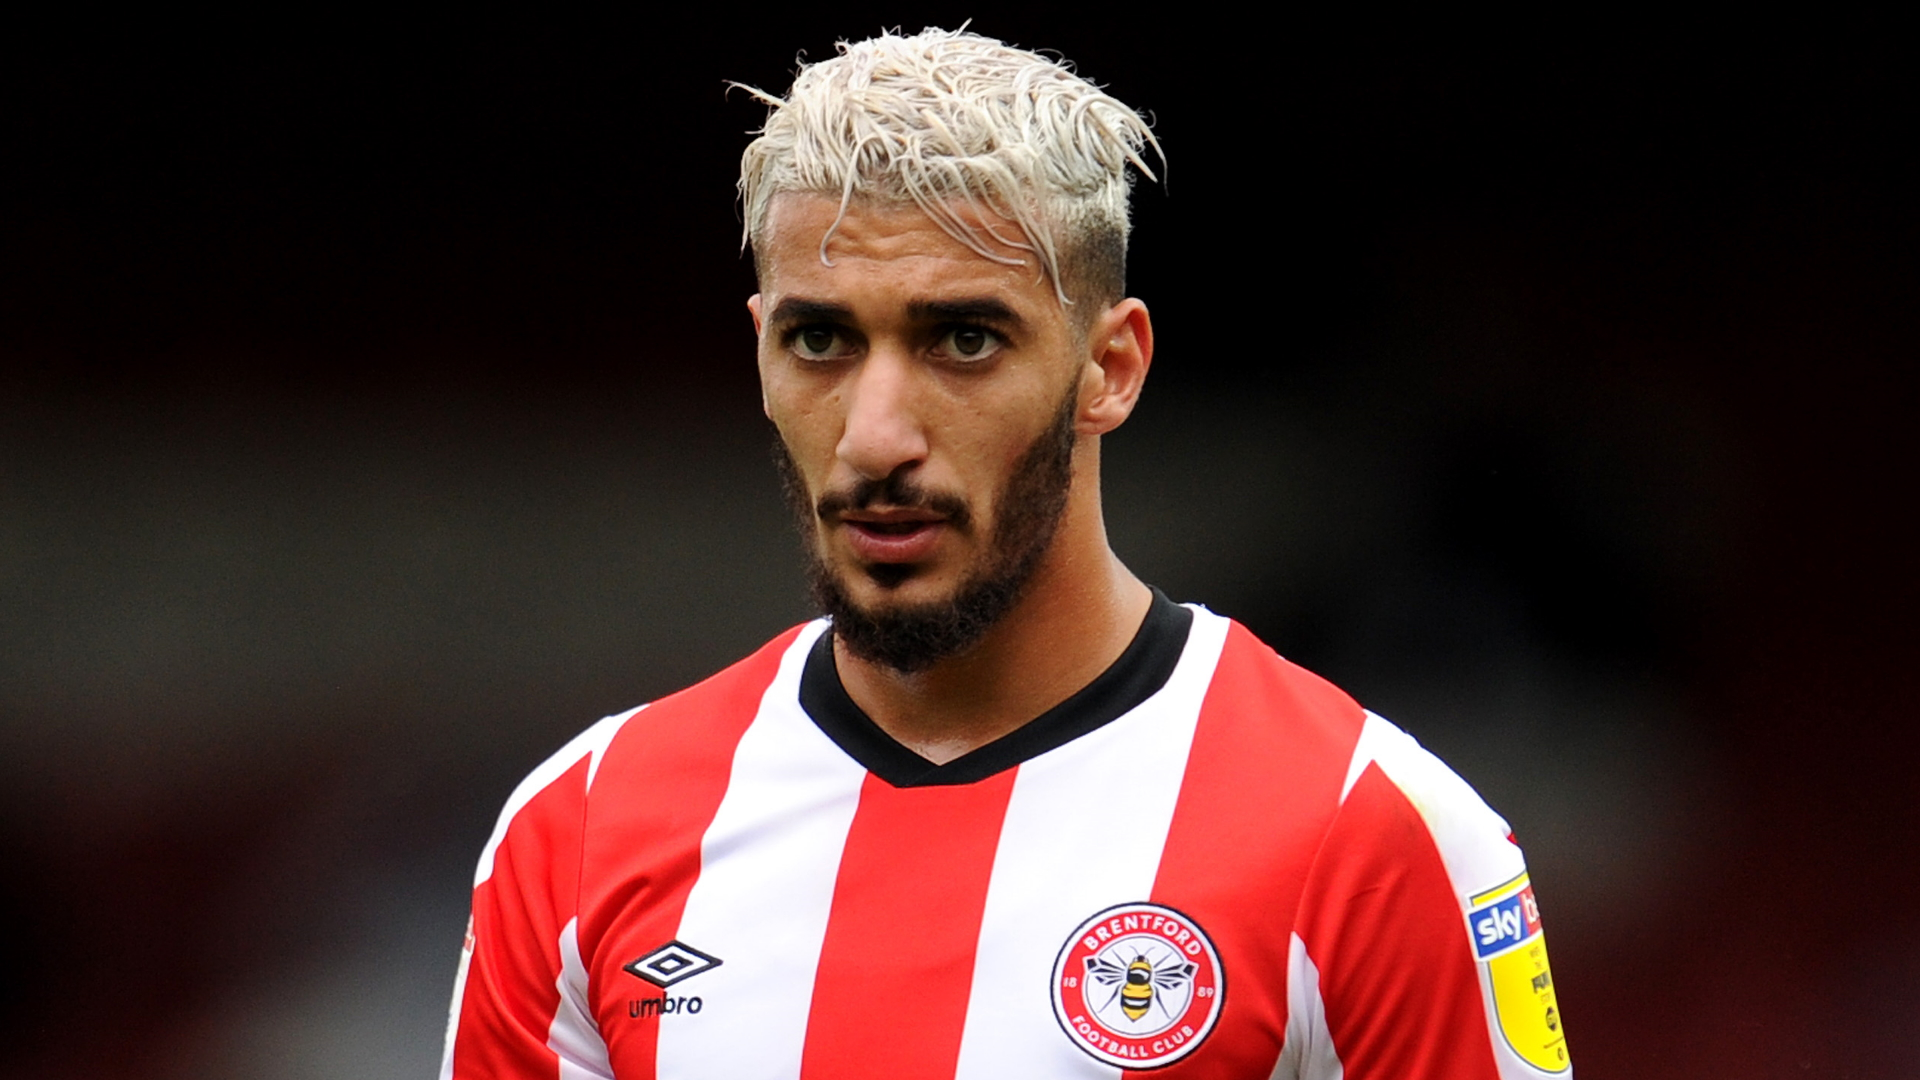 West Ham push to complete deal for Brentford's £30m-rated Benrahma after international duty